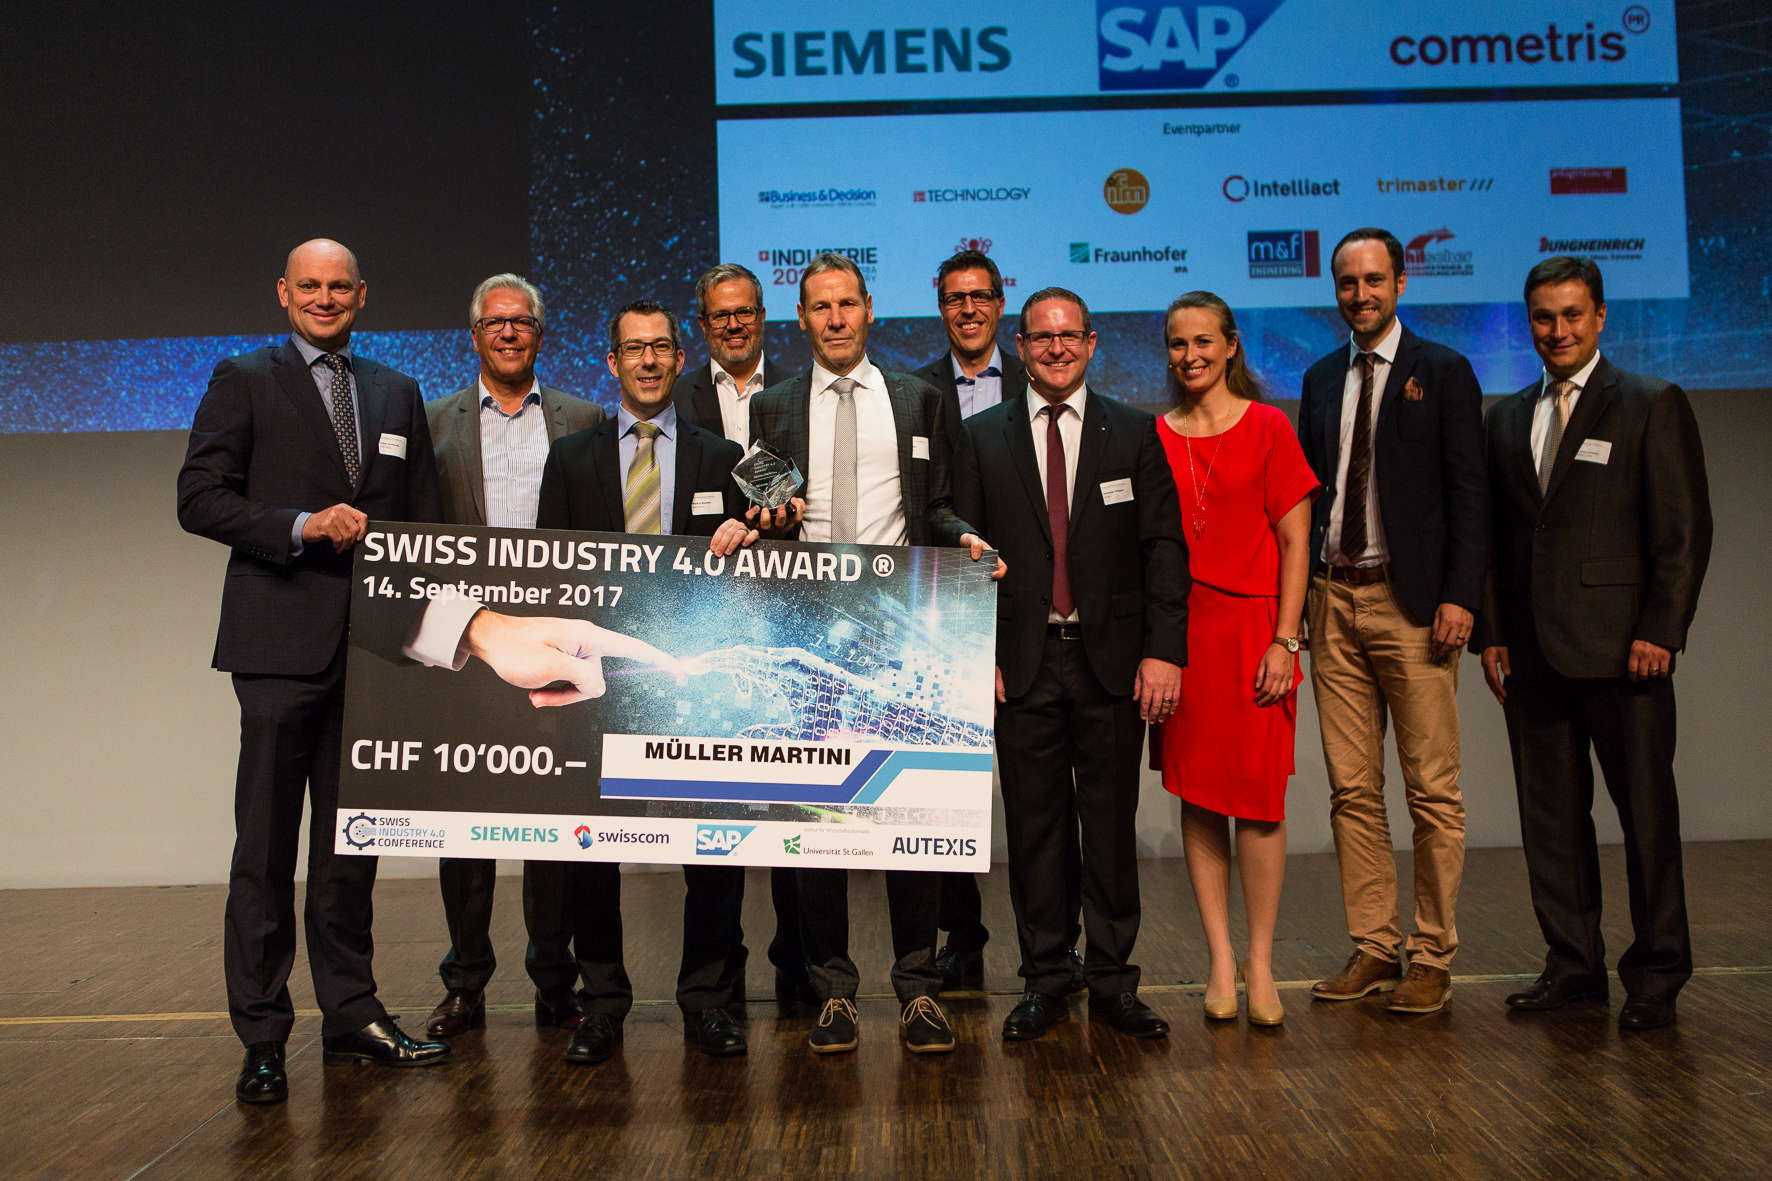 Swiss Industry 4.0 Conference Müller Martini gewinnt Swiss Industry 4.0 Award